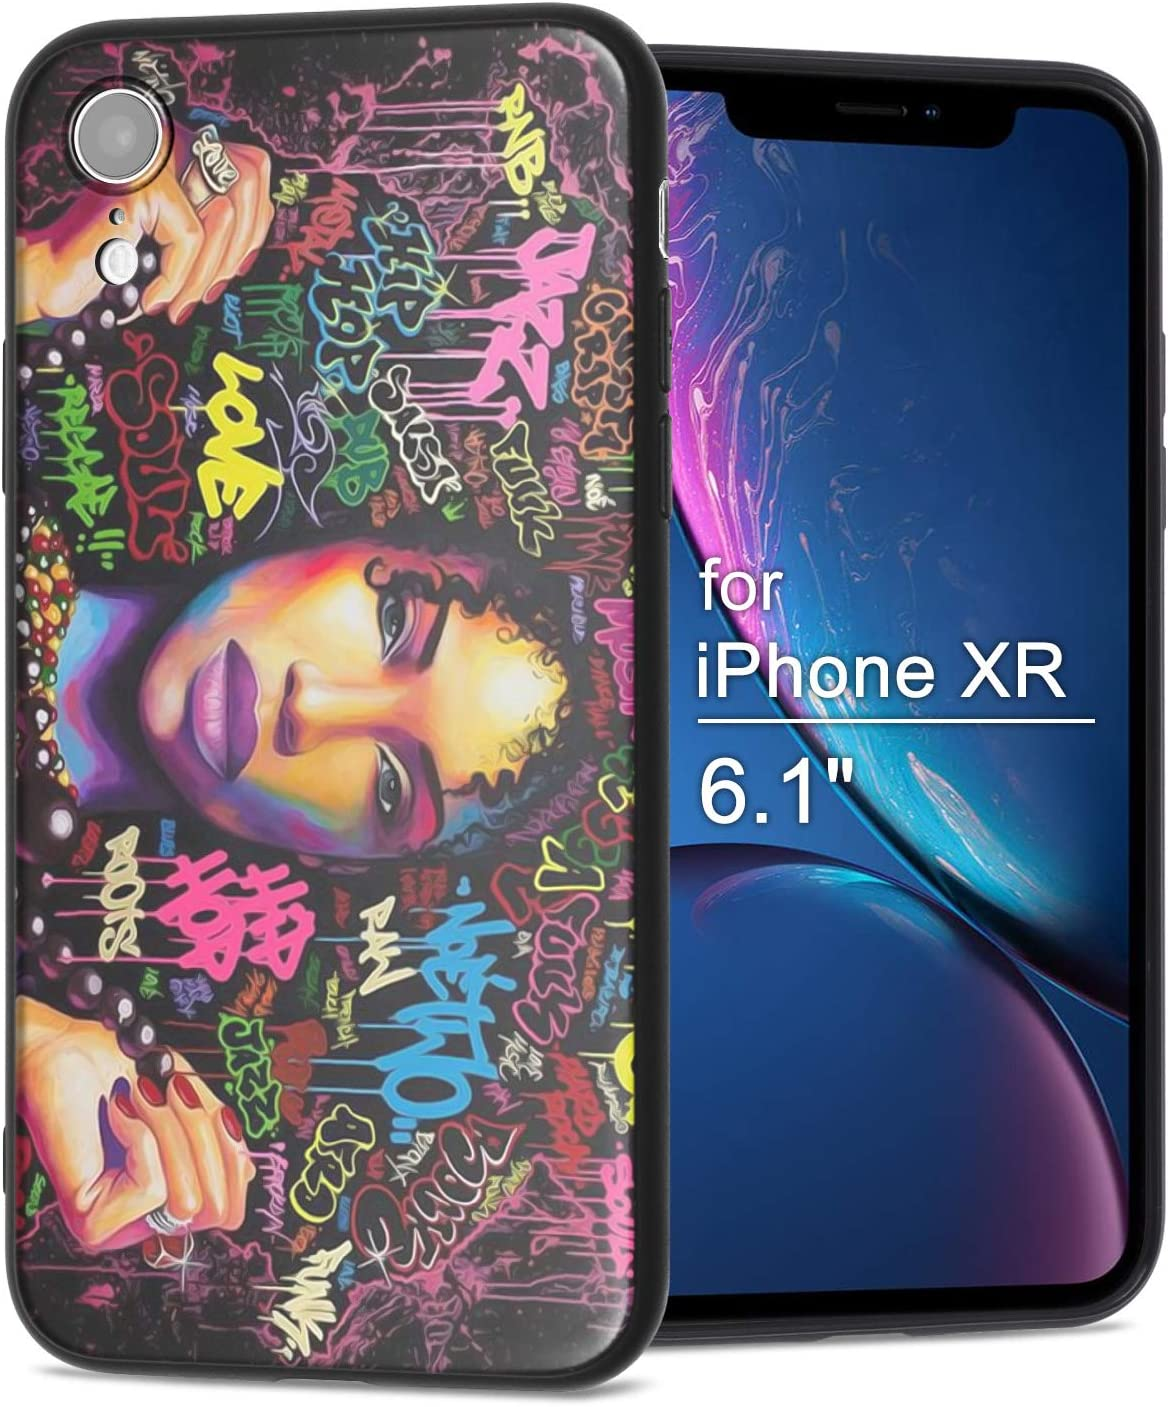 Amazon Com Iphone Xr Case African American Afro Girls Women Slim Fit Shockproof Bumper Cheap Cell Phone Accessories Thin Soft Black Tpu Protective Apple Iphone Xr Cases 04